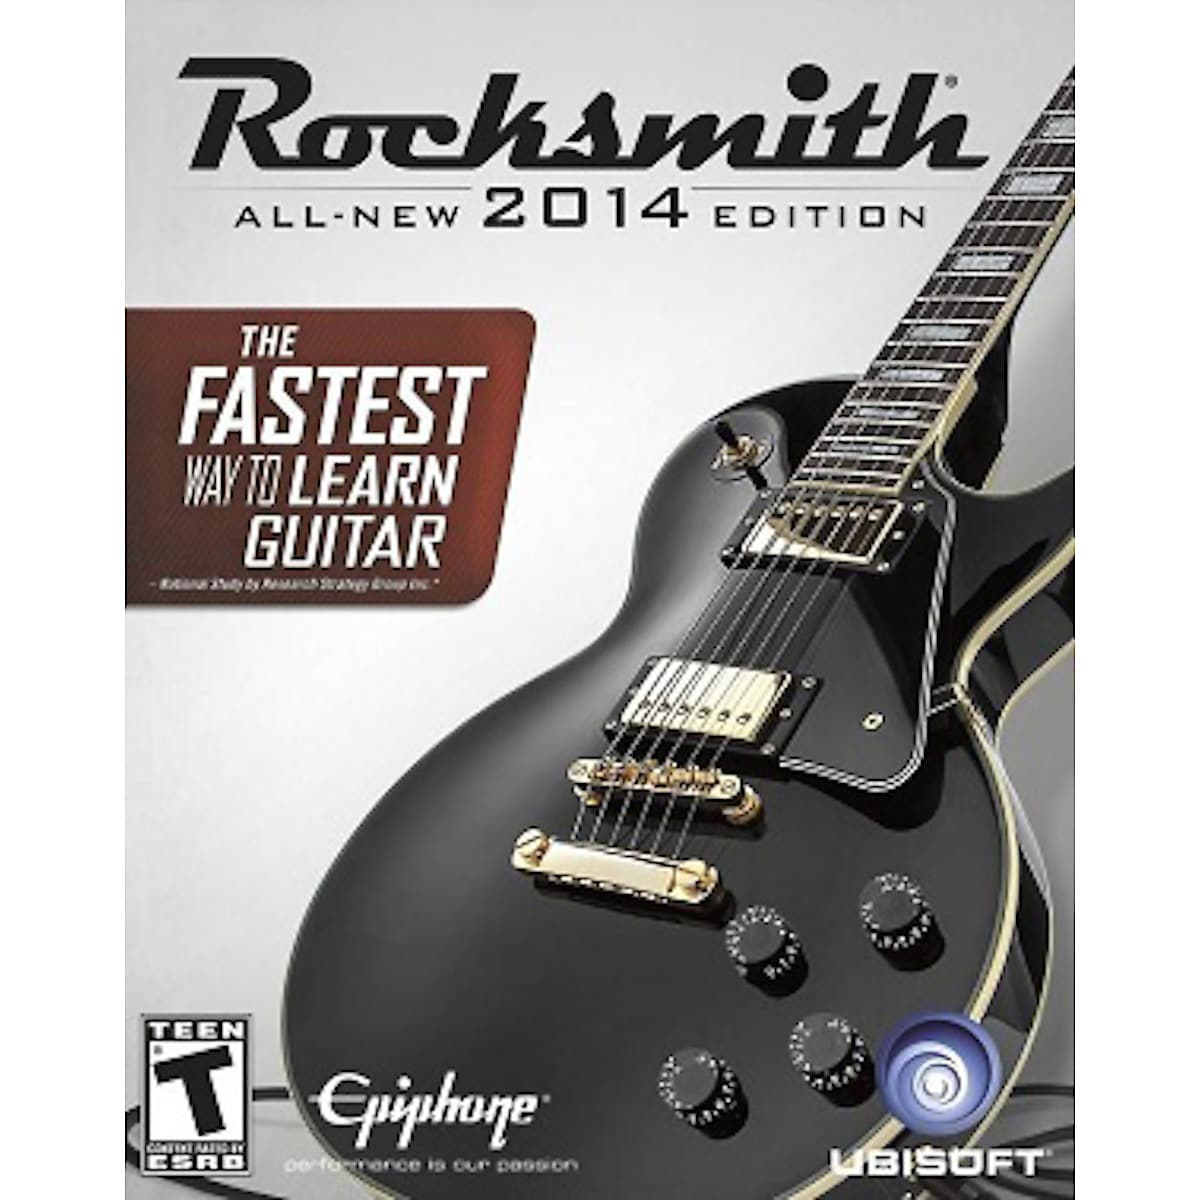 Rocksmith 2014 spill for PC/Mac